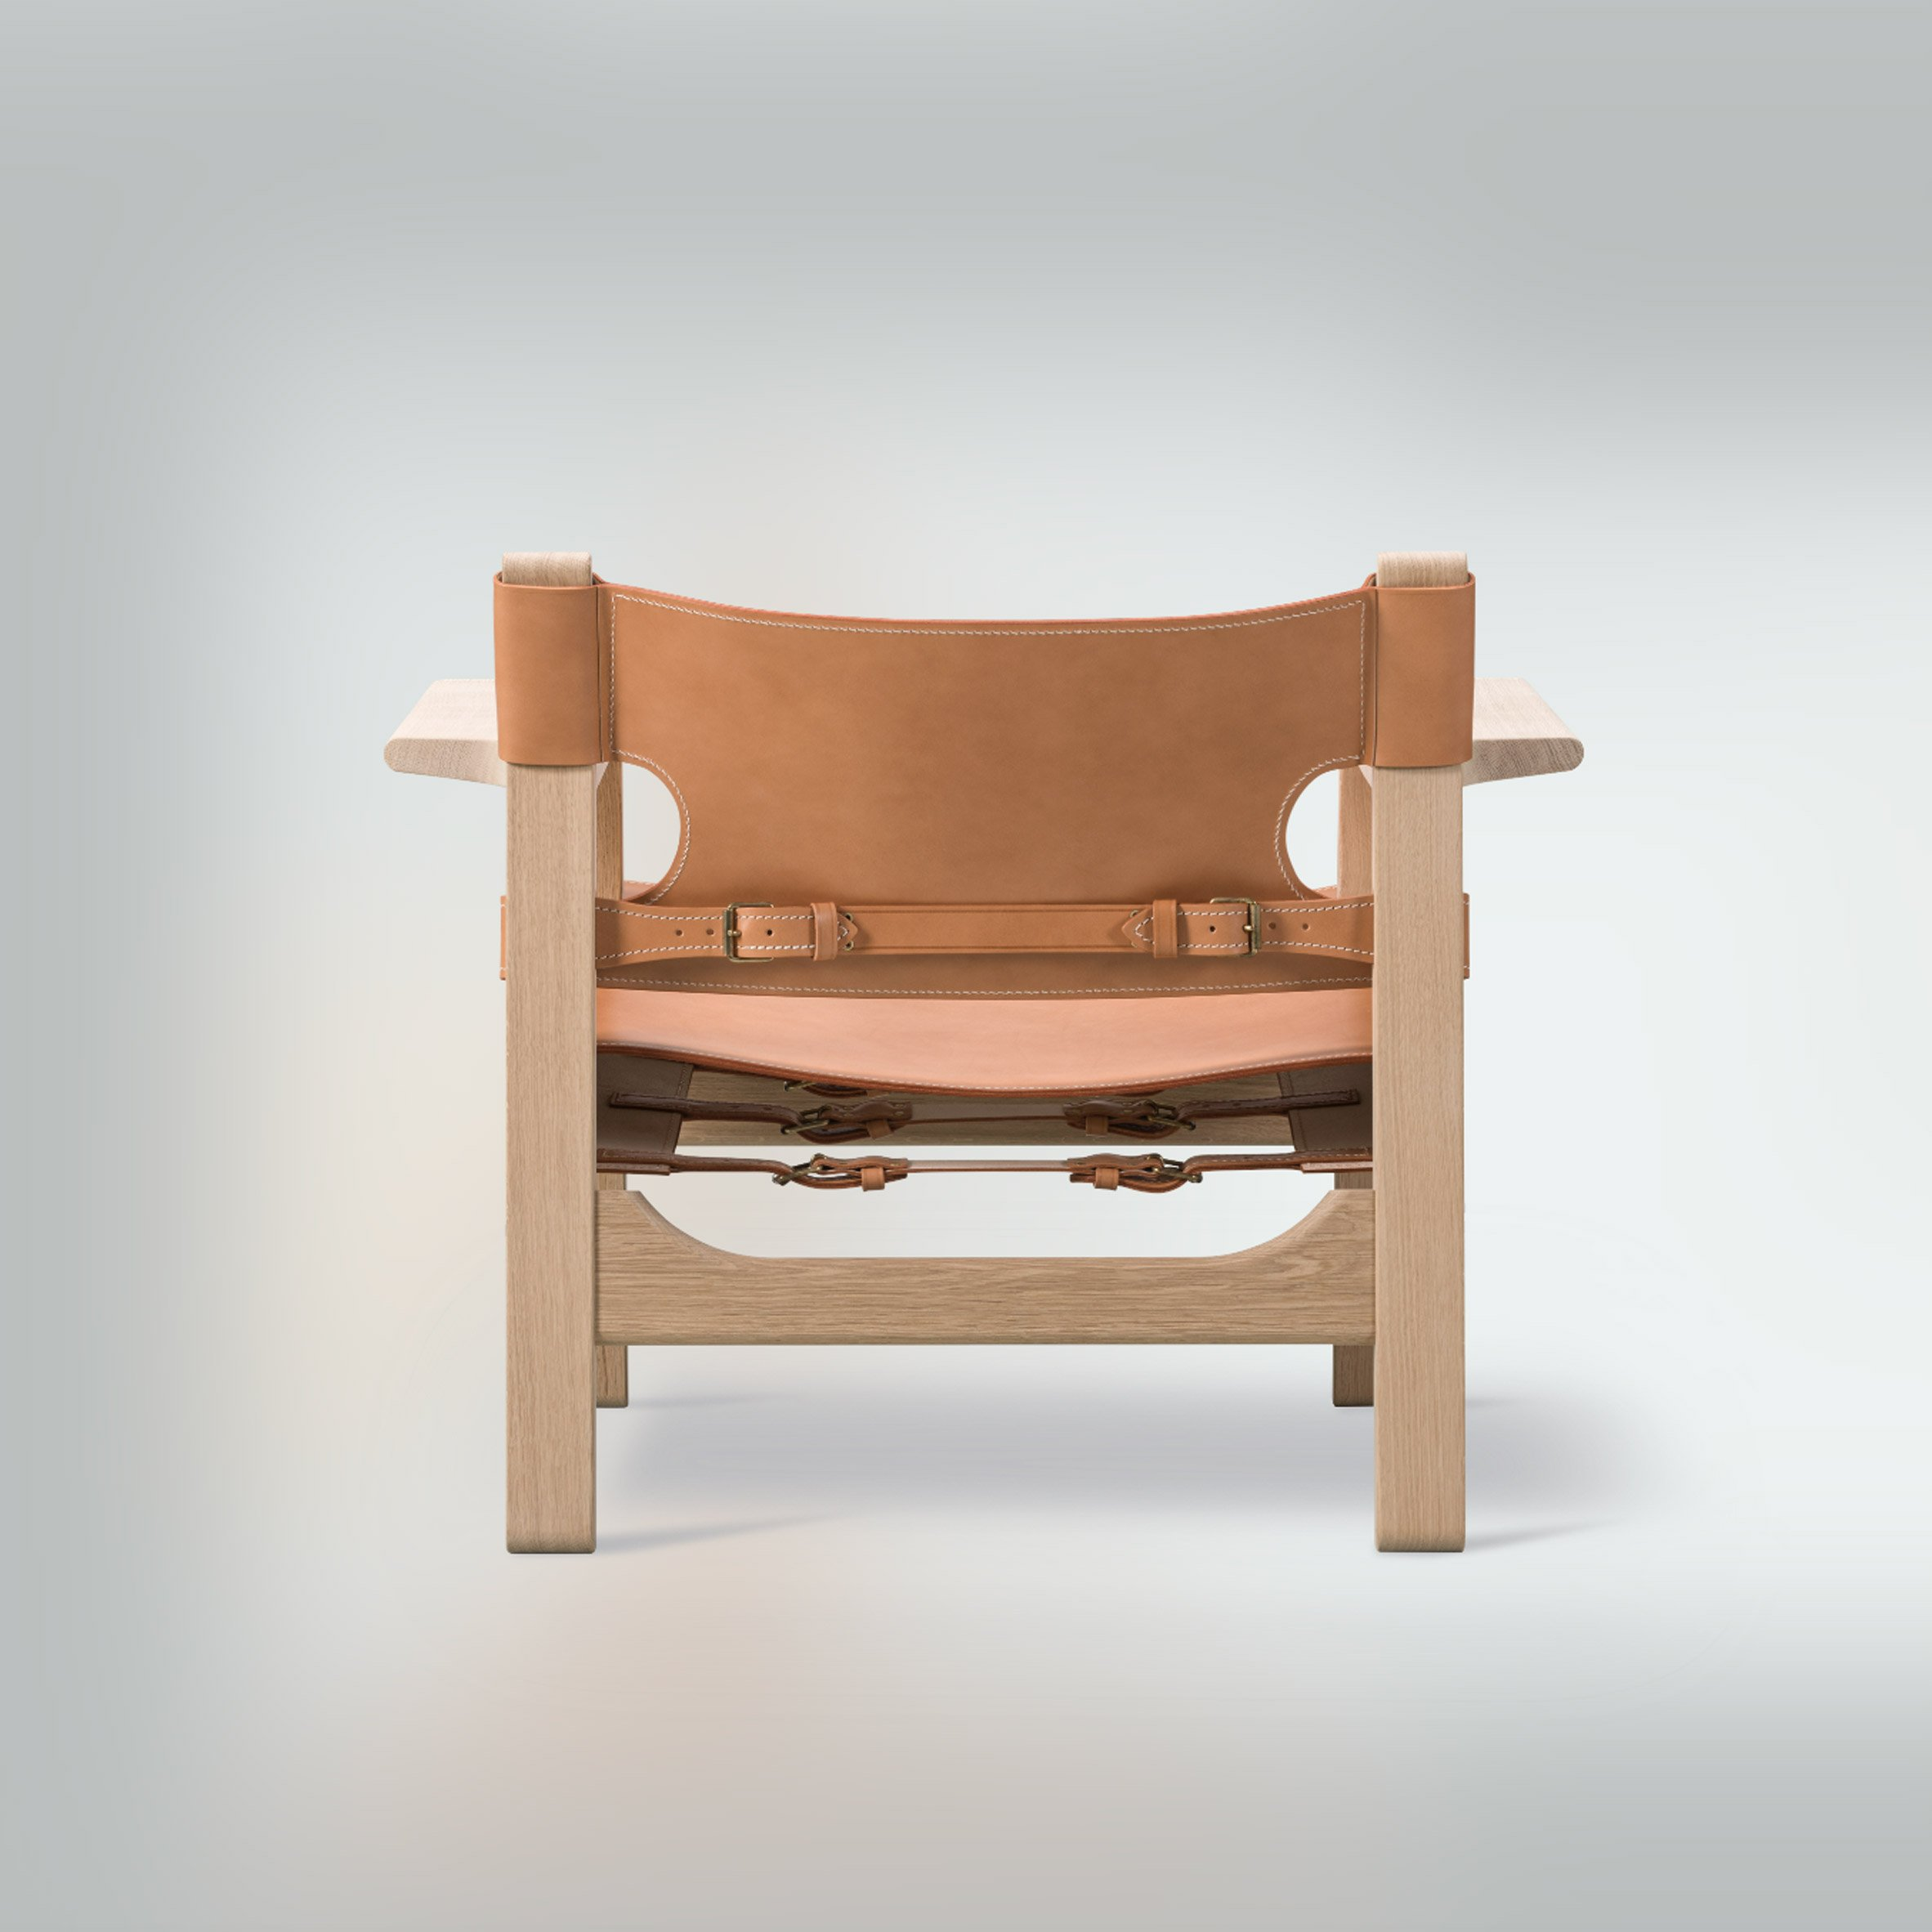 Back of the Spanish Chair by Børge Mogensen for Danish brand Fredericia